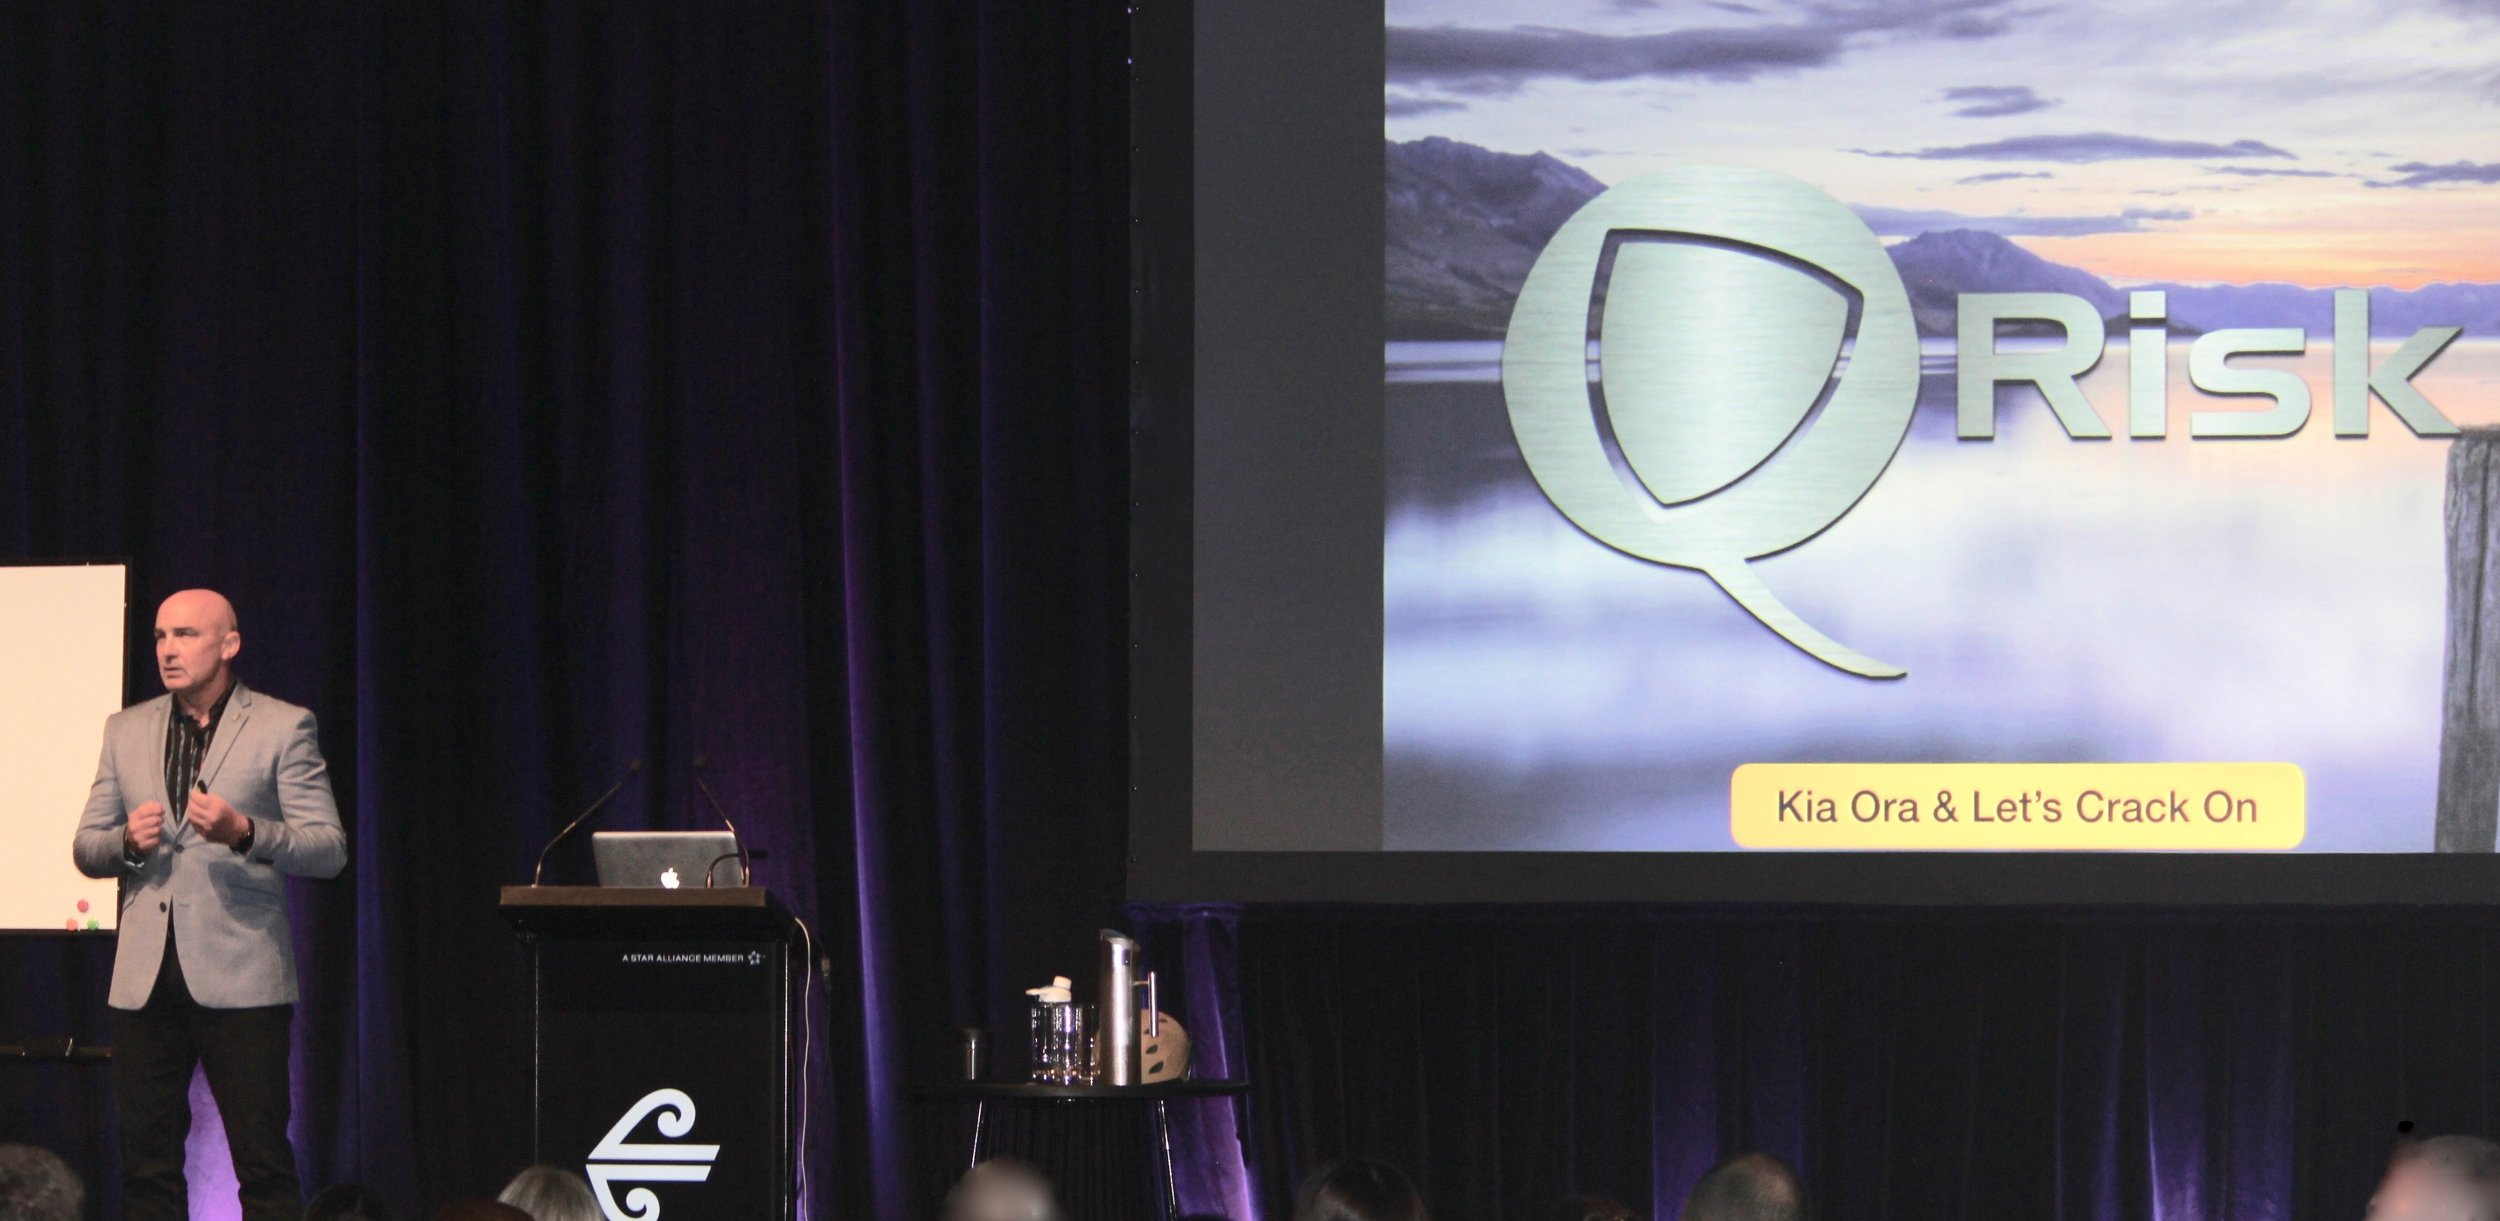 Be an Influencer of change - One of the key message as delivered to the Air NZ Health & Safety Forum 2018. This together with Situational Awareness - Be in the moment.